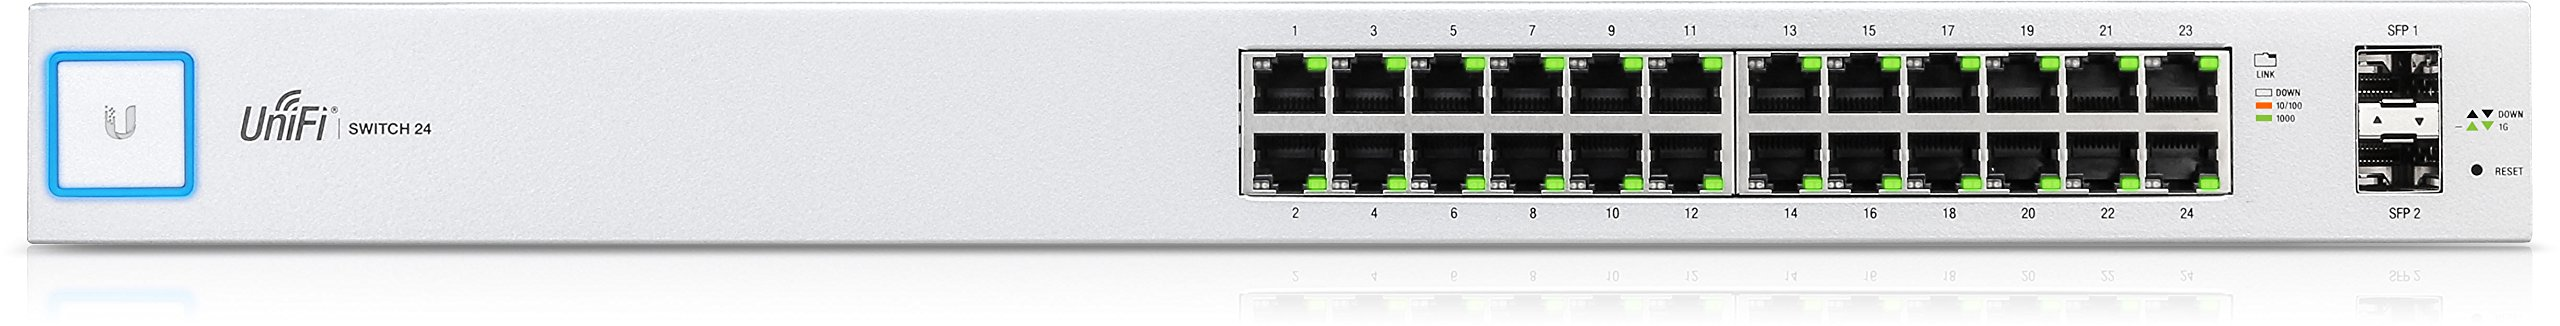 Ubiquiti US-24 Unifi Switch by Ubiquiti Networks